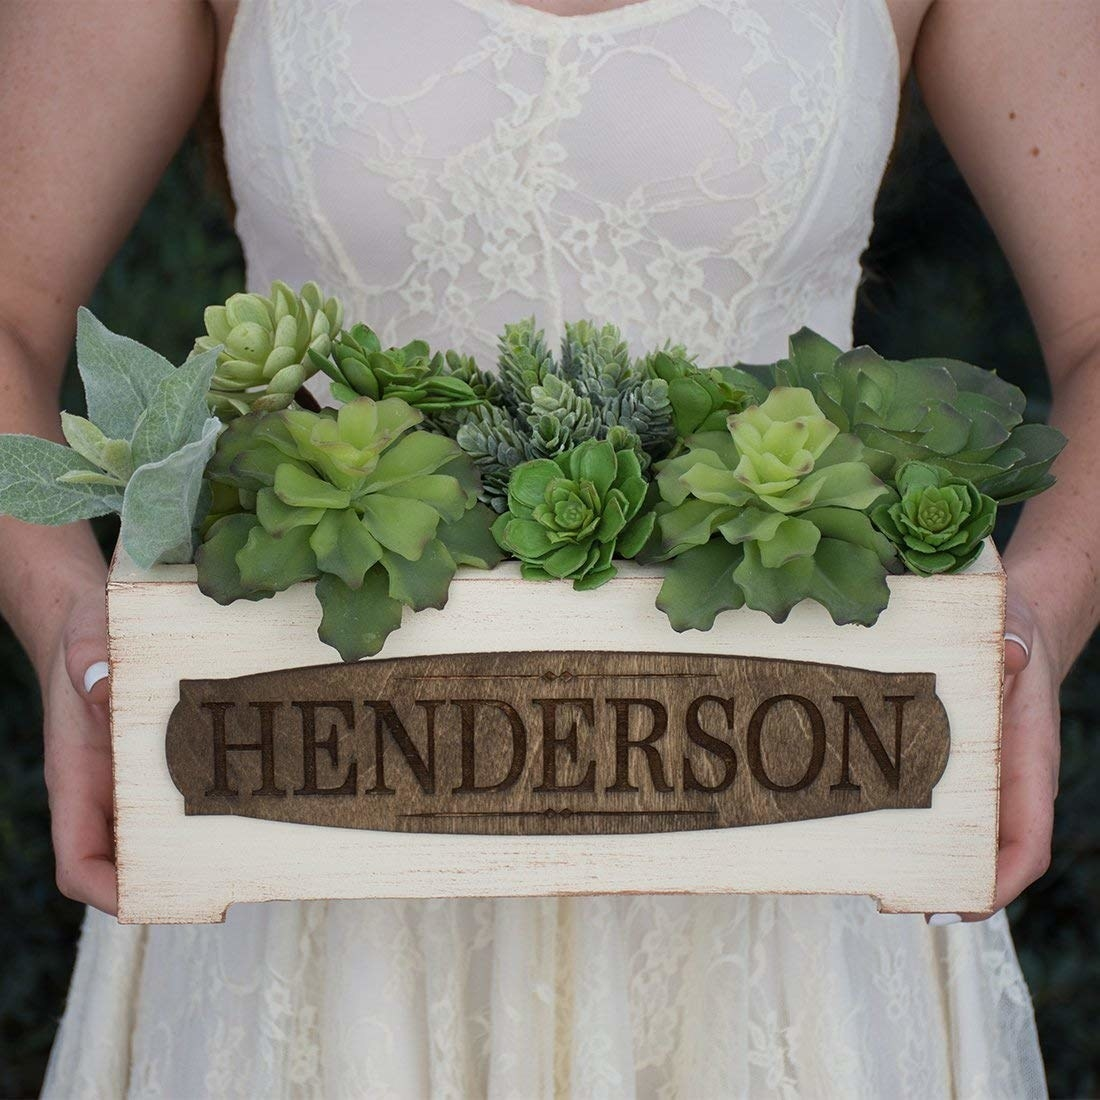 Rustic box filled with succulents and name Henderson on front